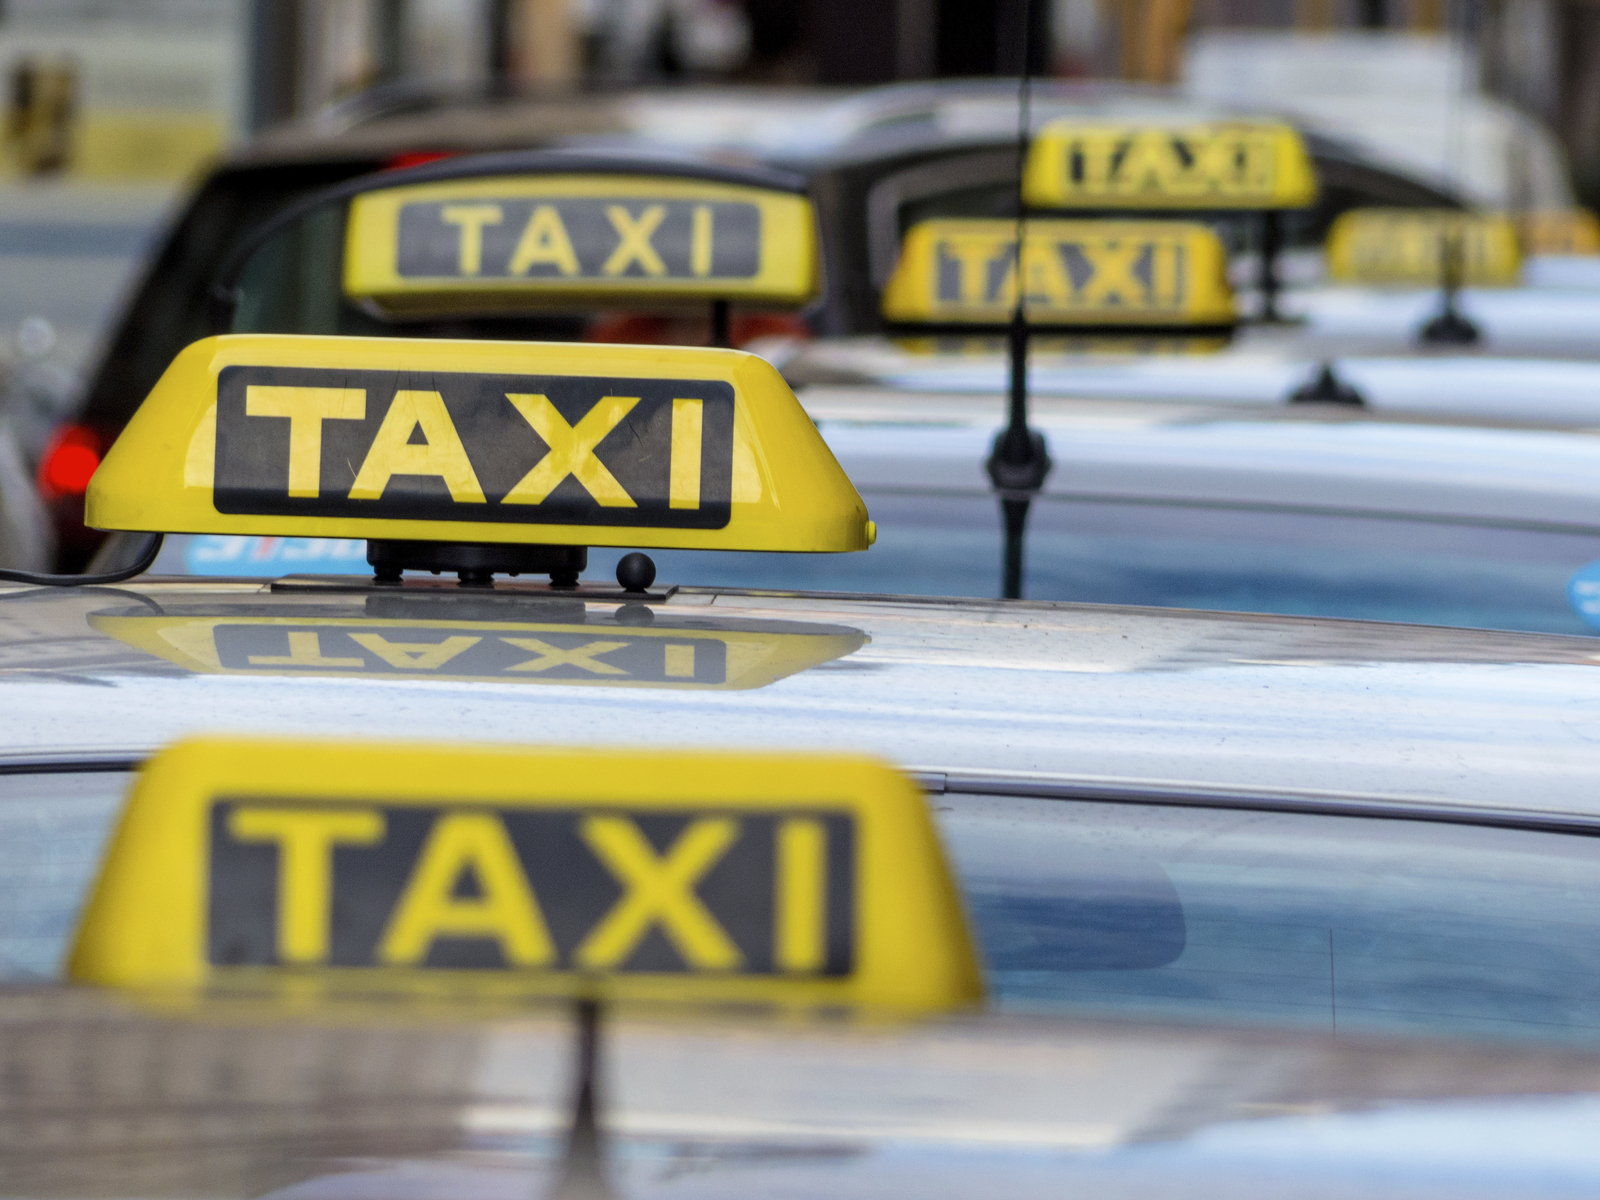 Taxi drivers in Copenhagen are losing customers big time (photo: iStock)